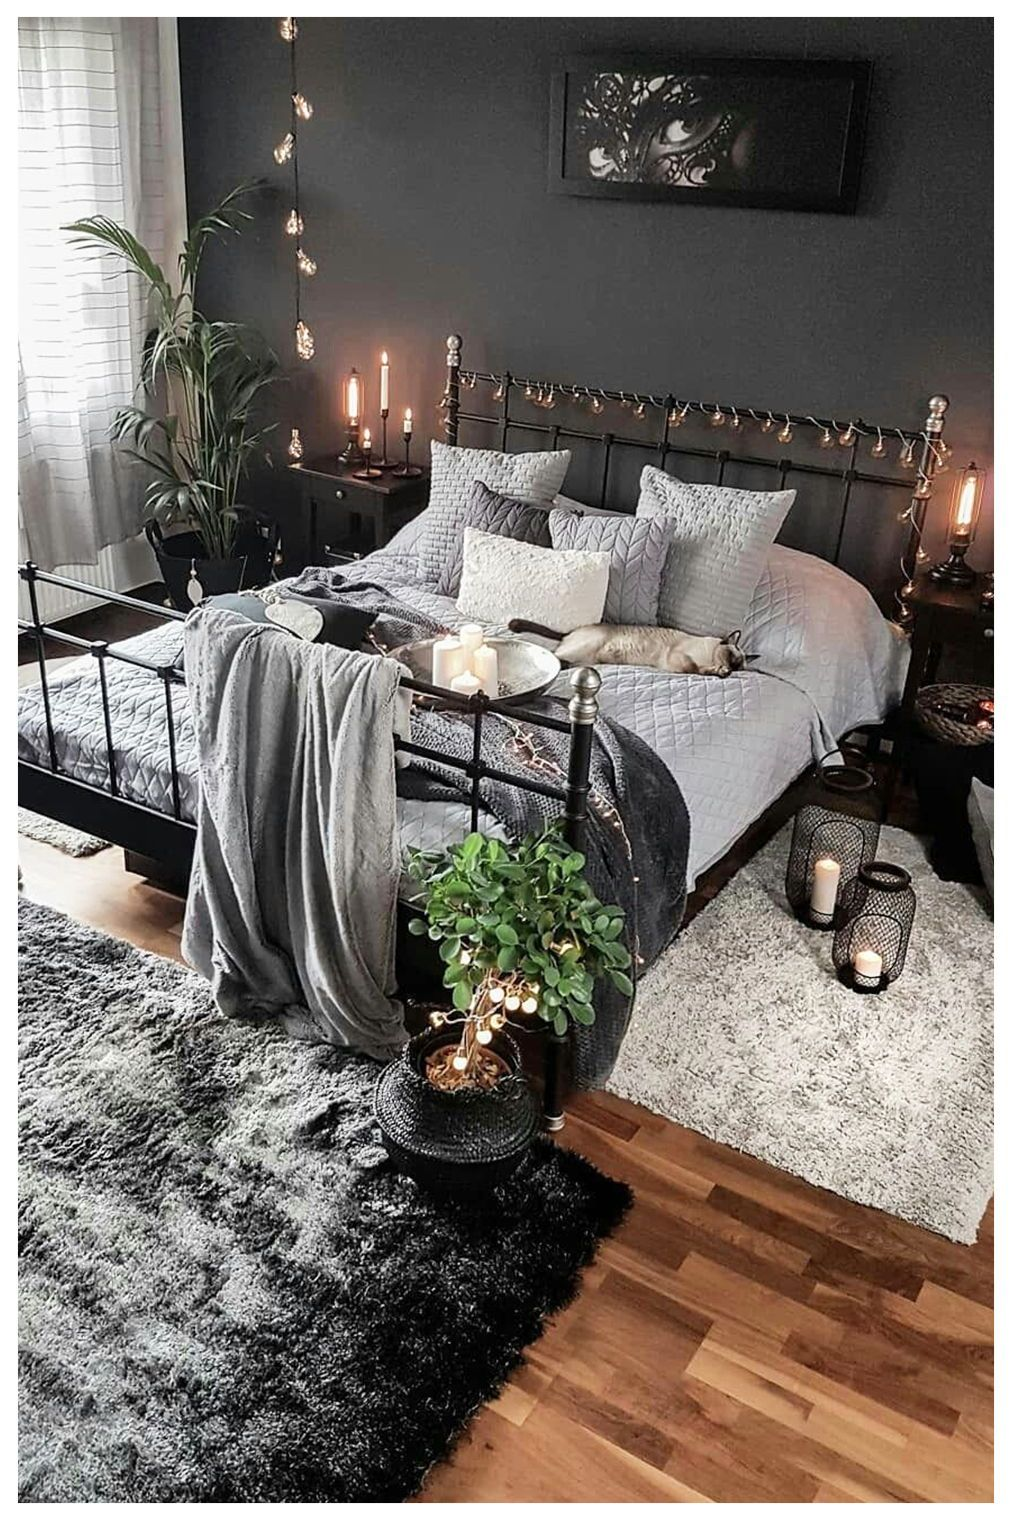 Gothic Bedroom Ideas 40 Gorgeous Design How To Decorate Minimalist Living Room Decor Apartment Bedroom Decor Bedroom Decor